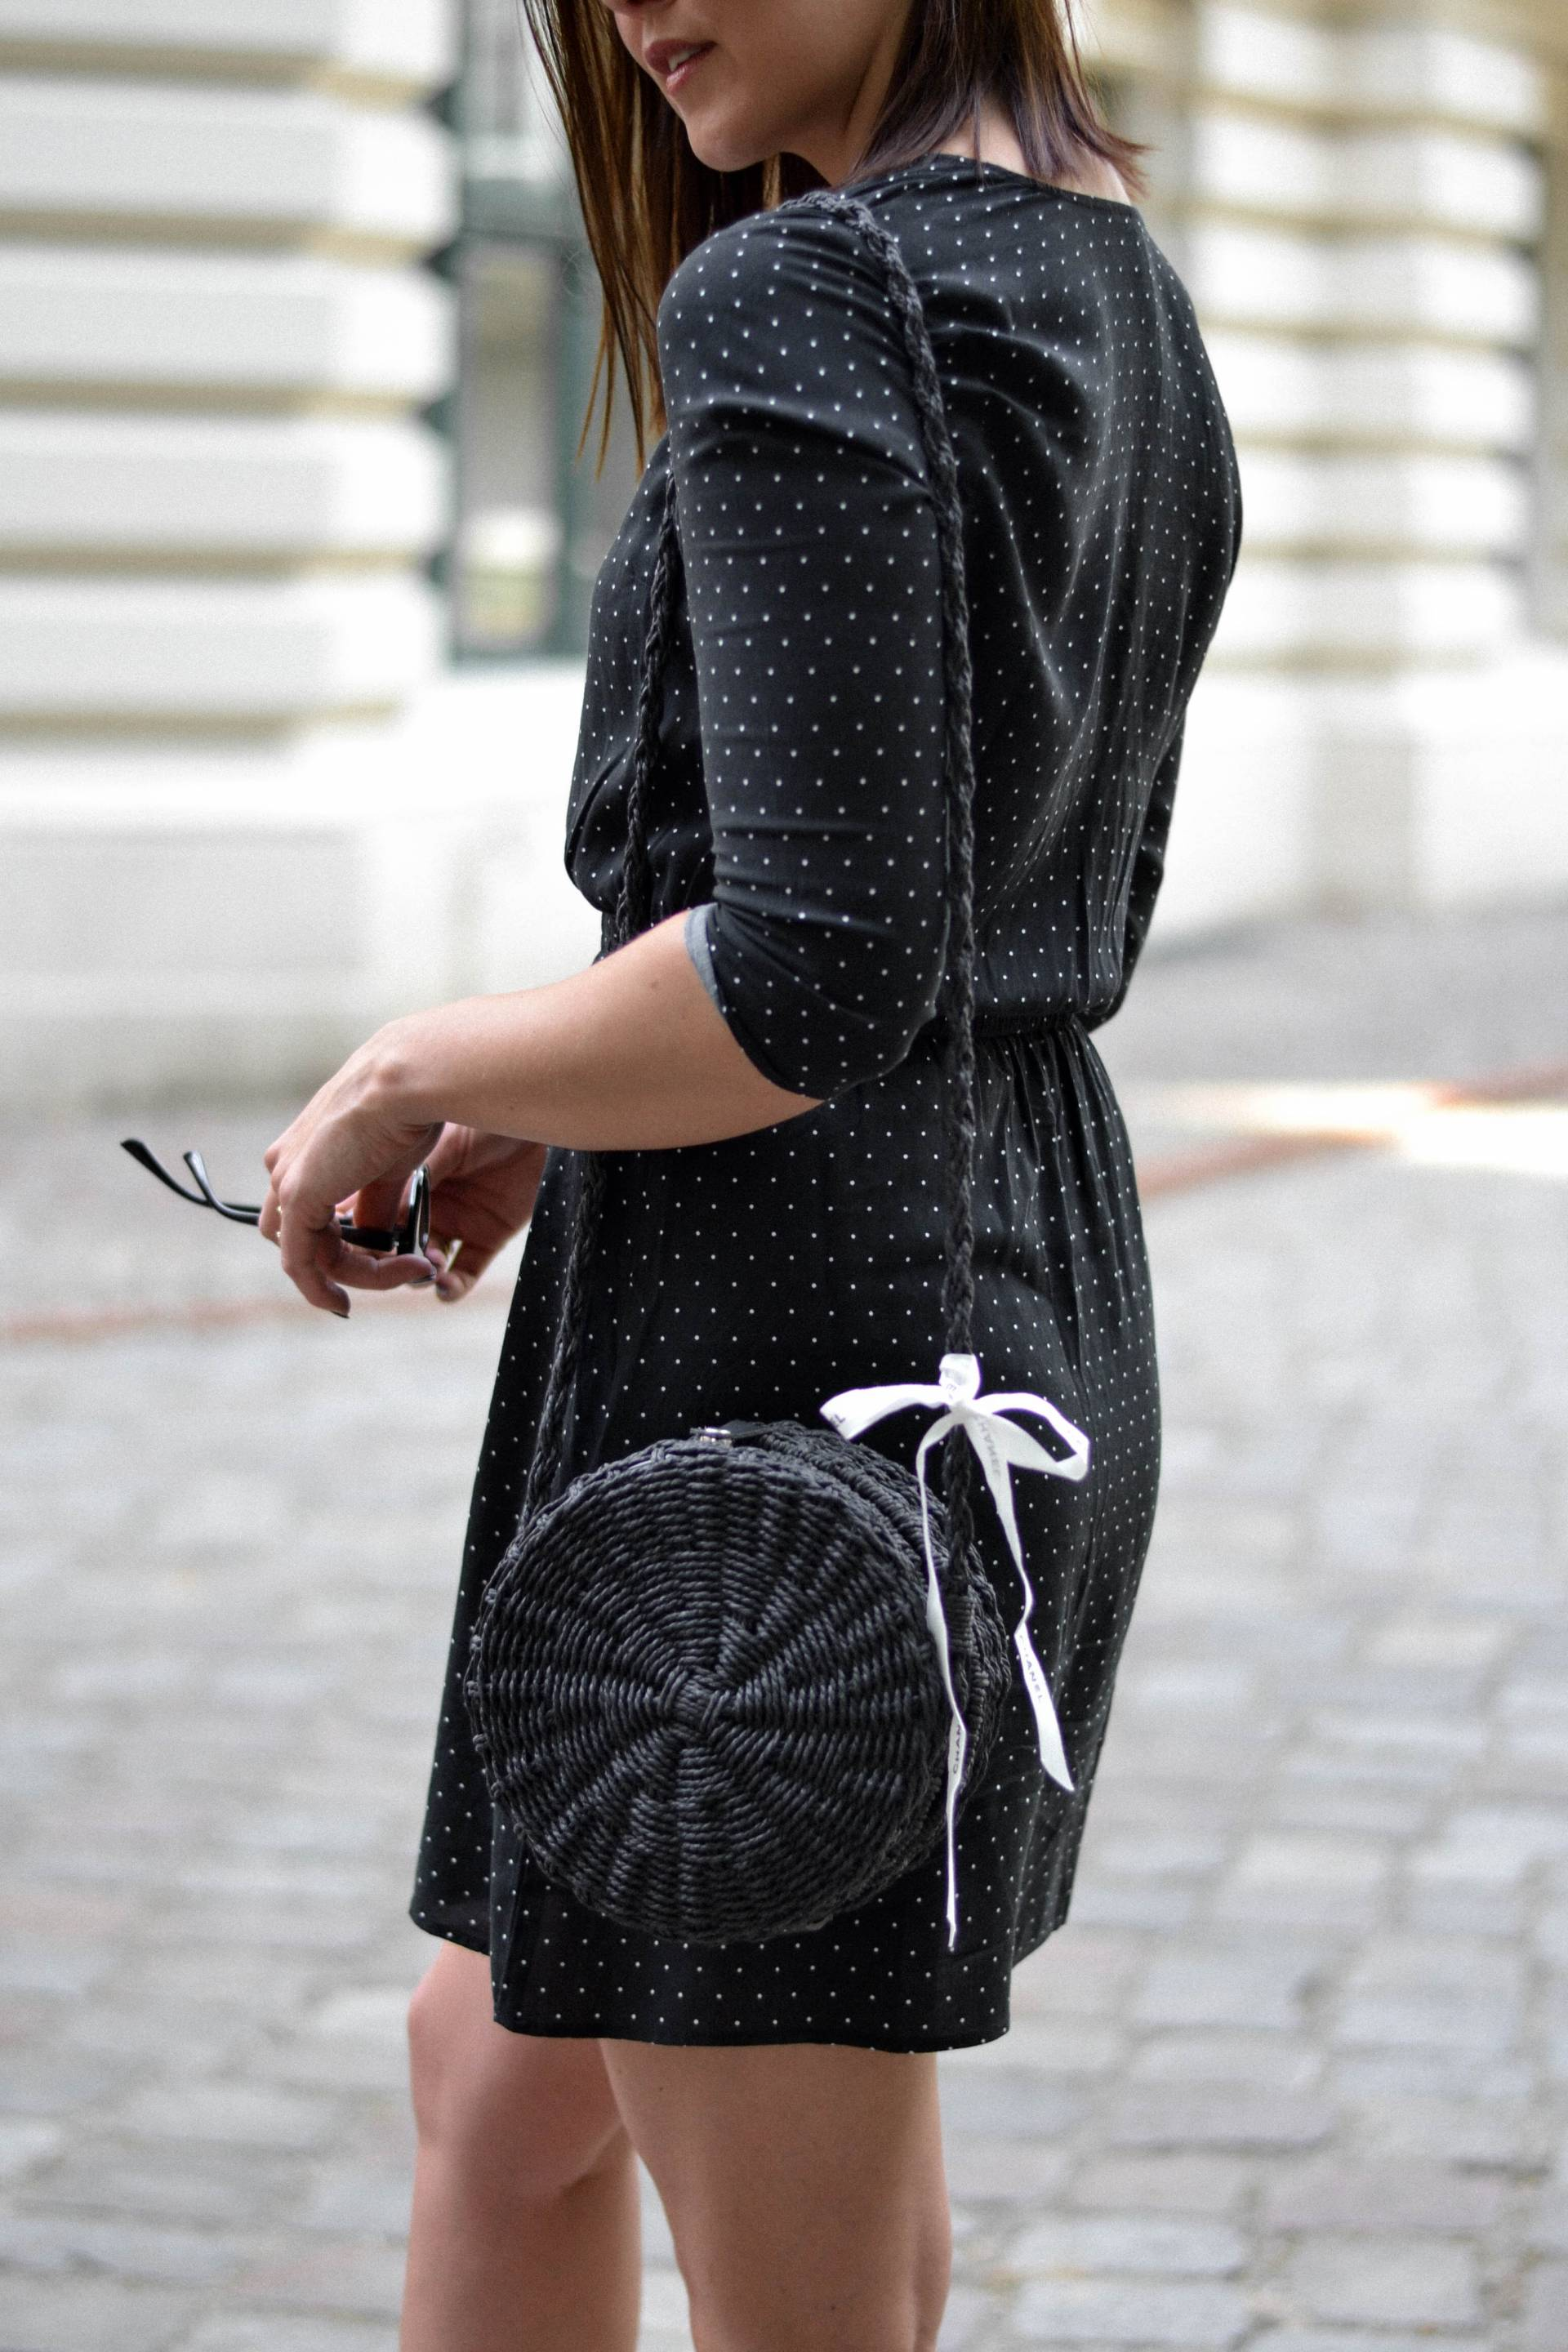 style-appetite-polka-dot-dress-circle-basket-bag